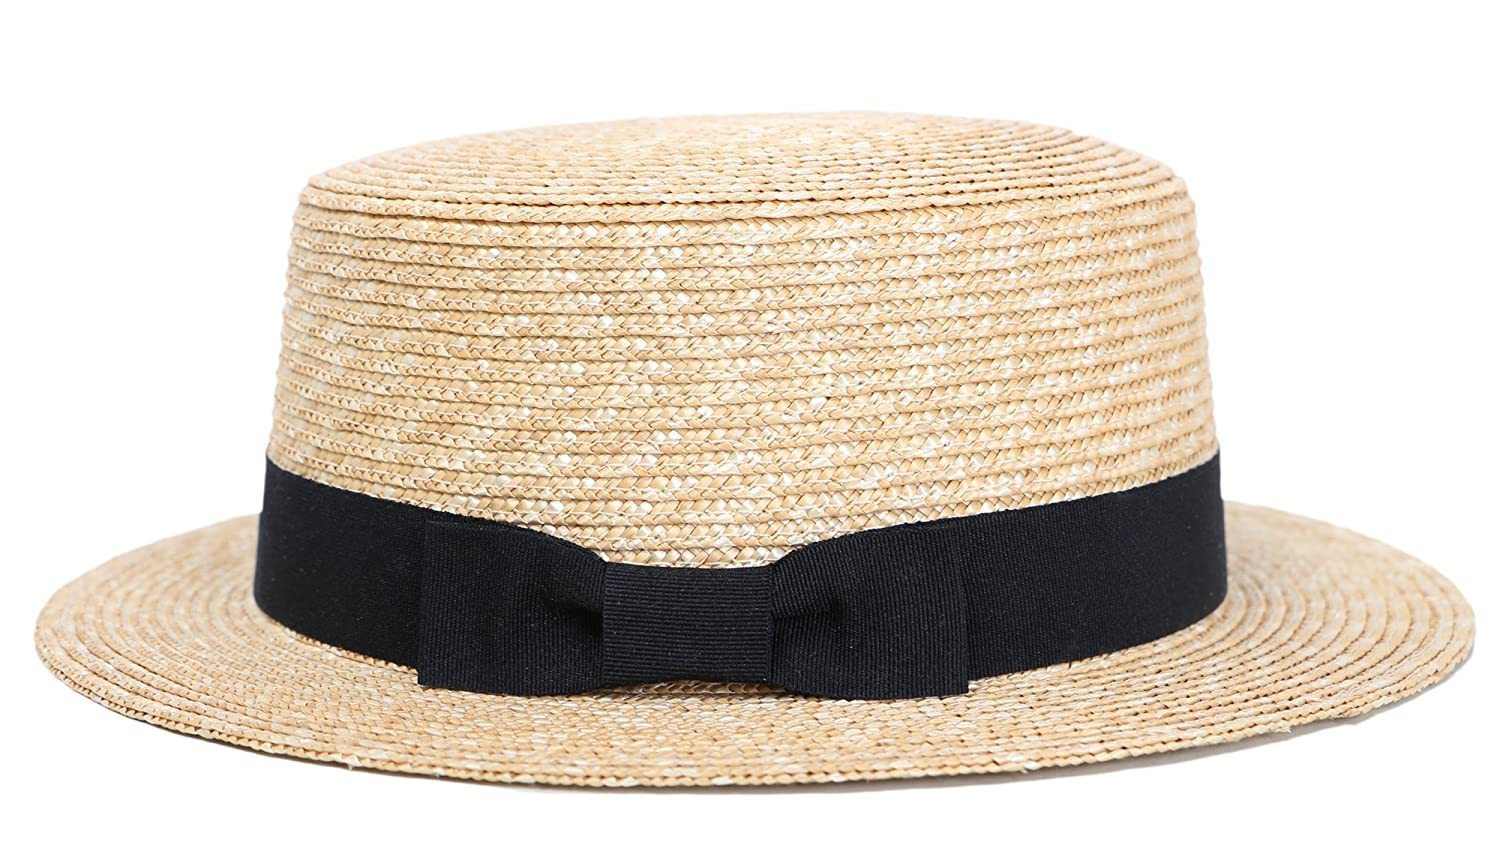 a7913c19634267 RIONA Women's Natural Straw Boater Hat Flat Top Summer Beach Sun Hat UPF 50+  at Amazon Women's Clothing store: